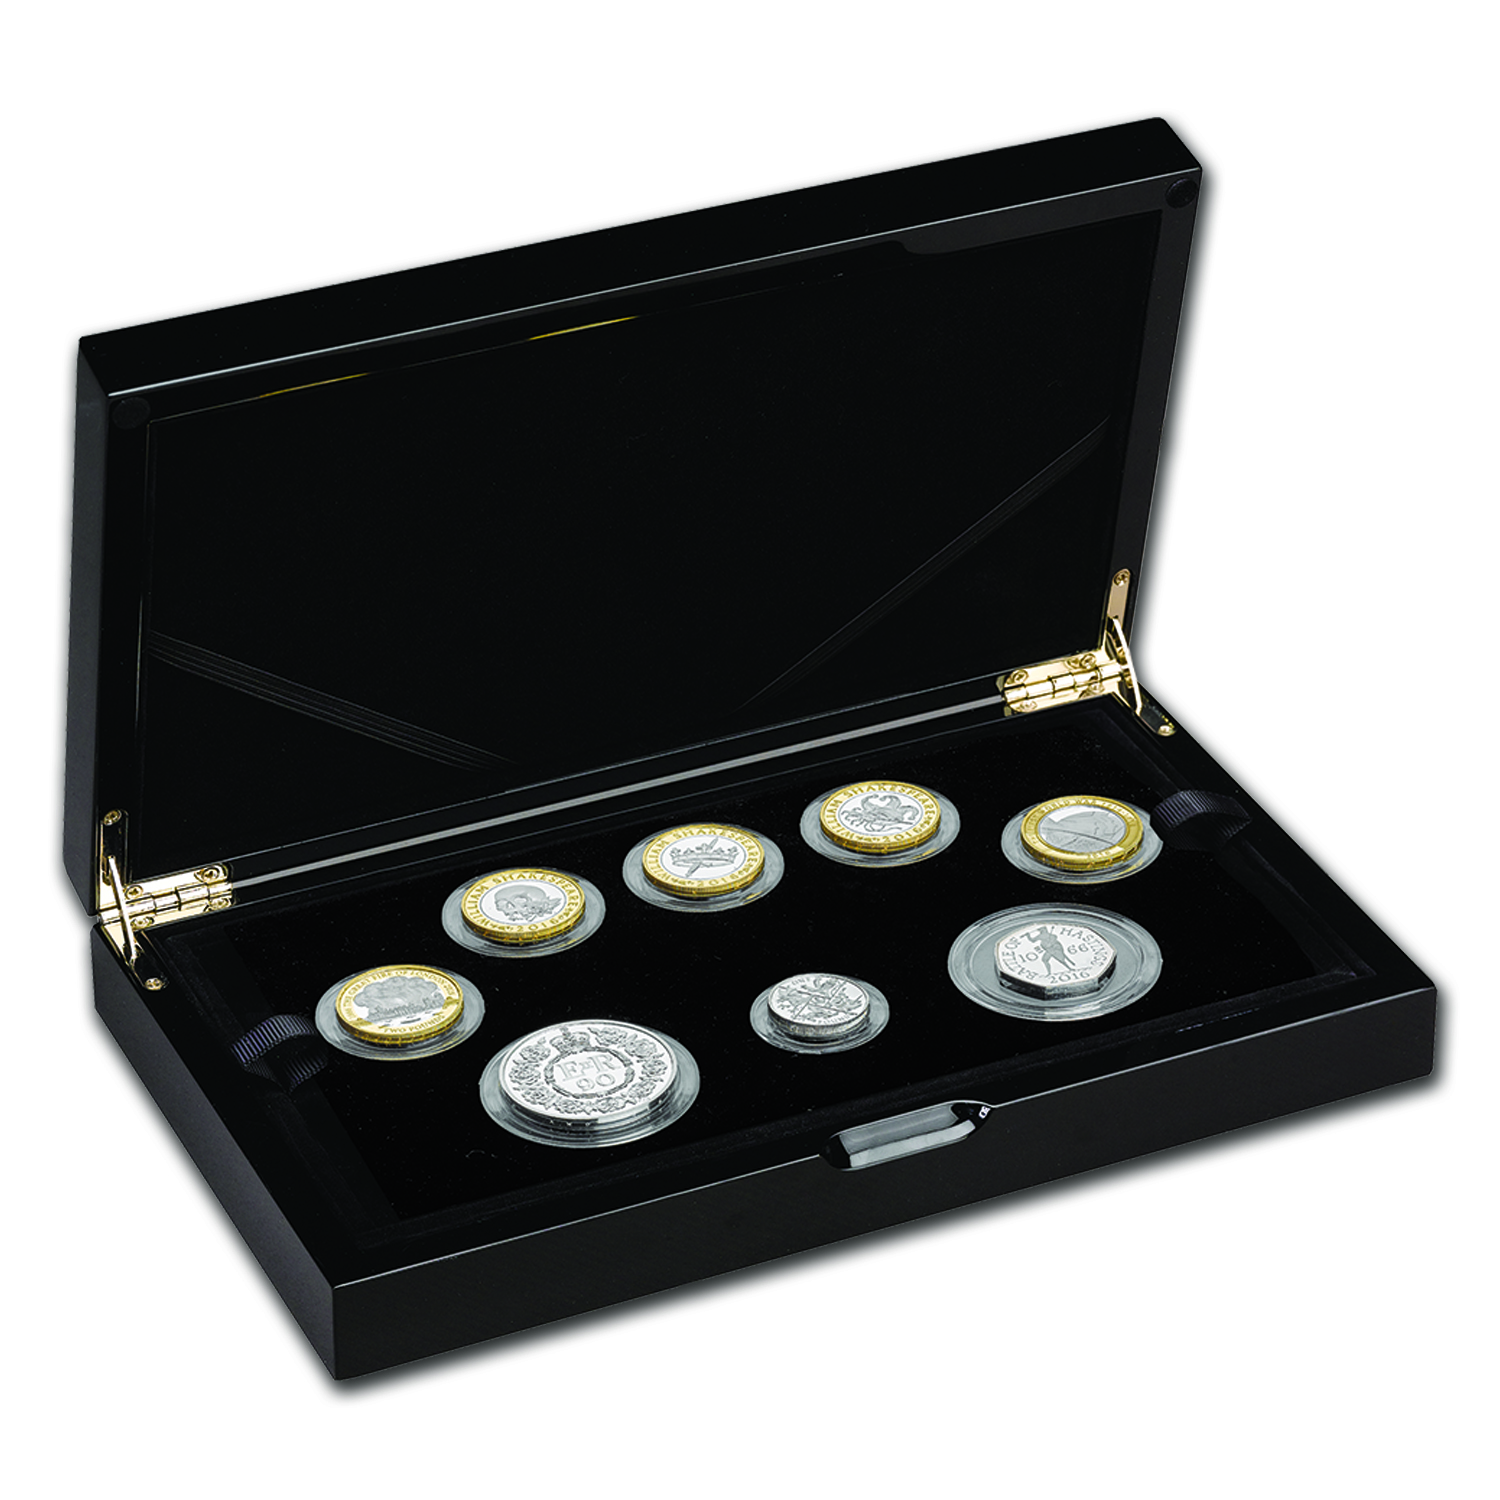 2016 Great Britain 8-Coin Silver Commemorative Proof Set